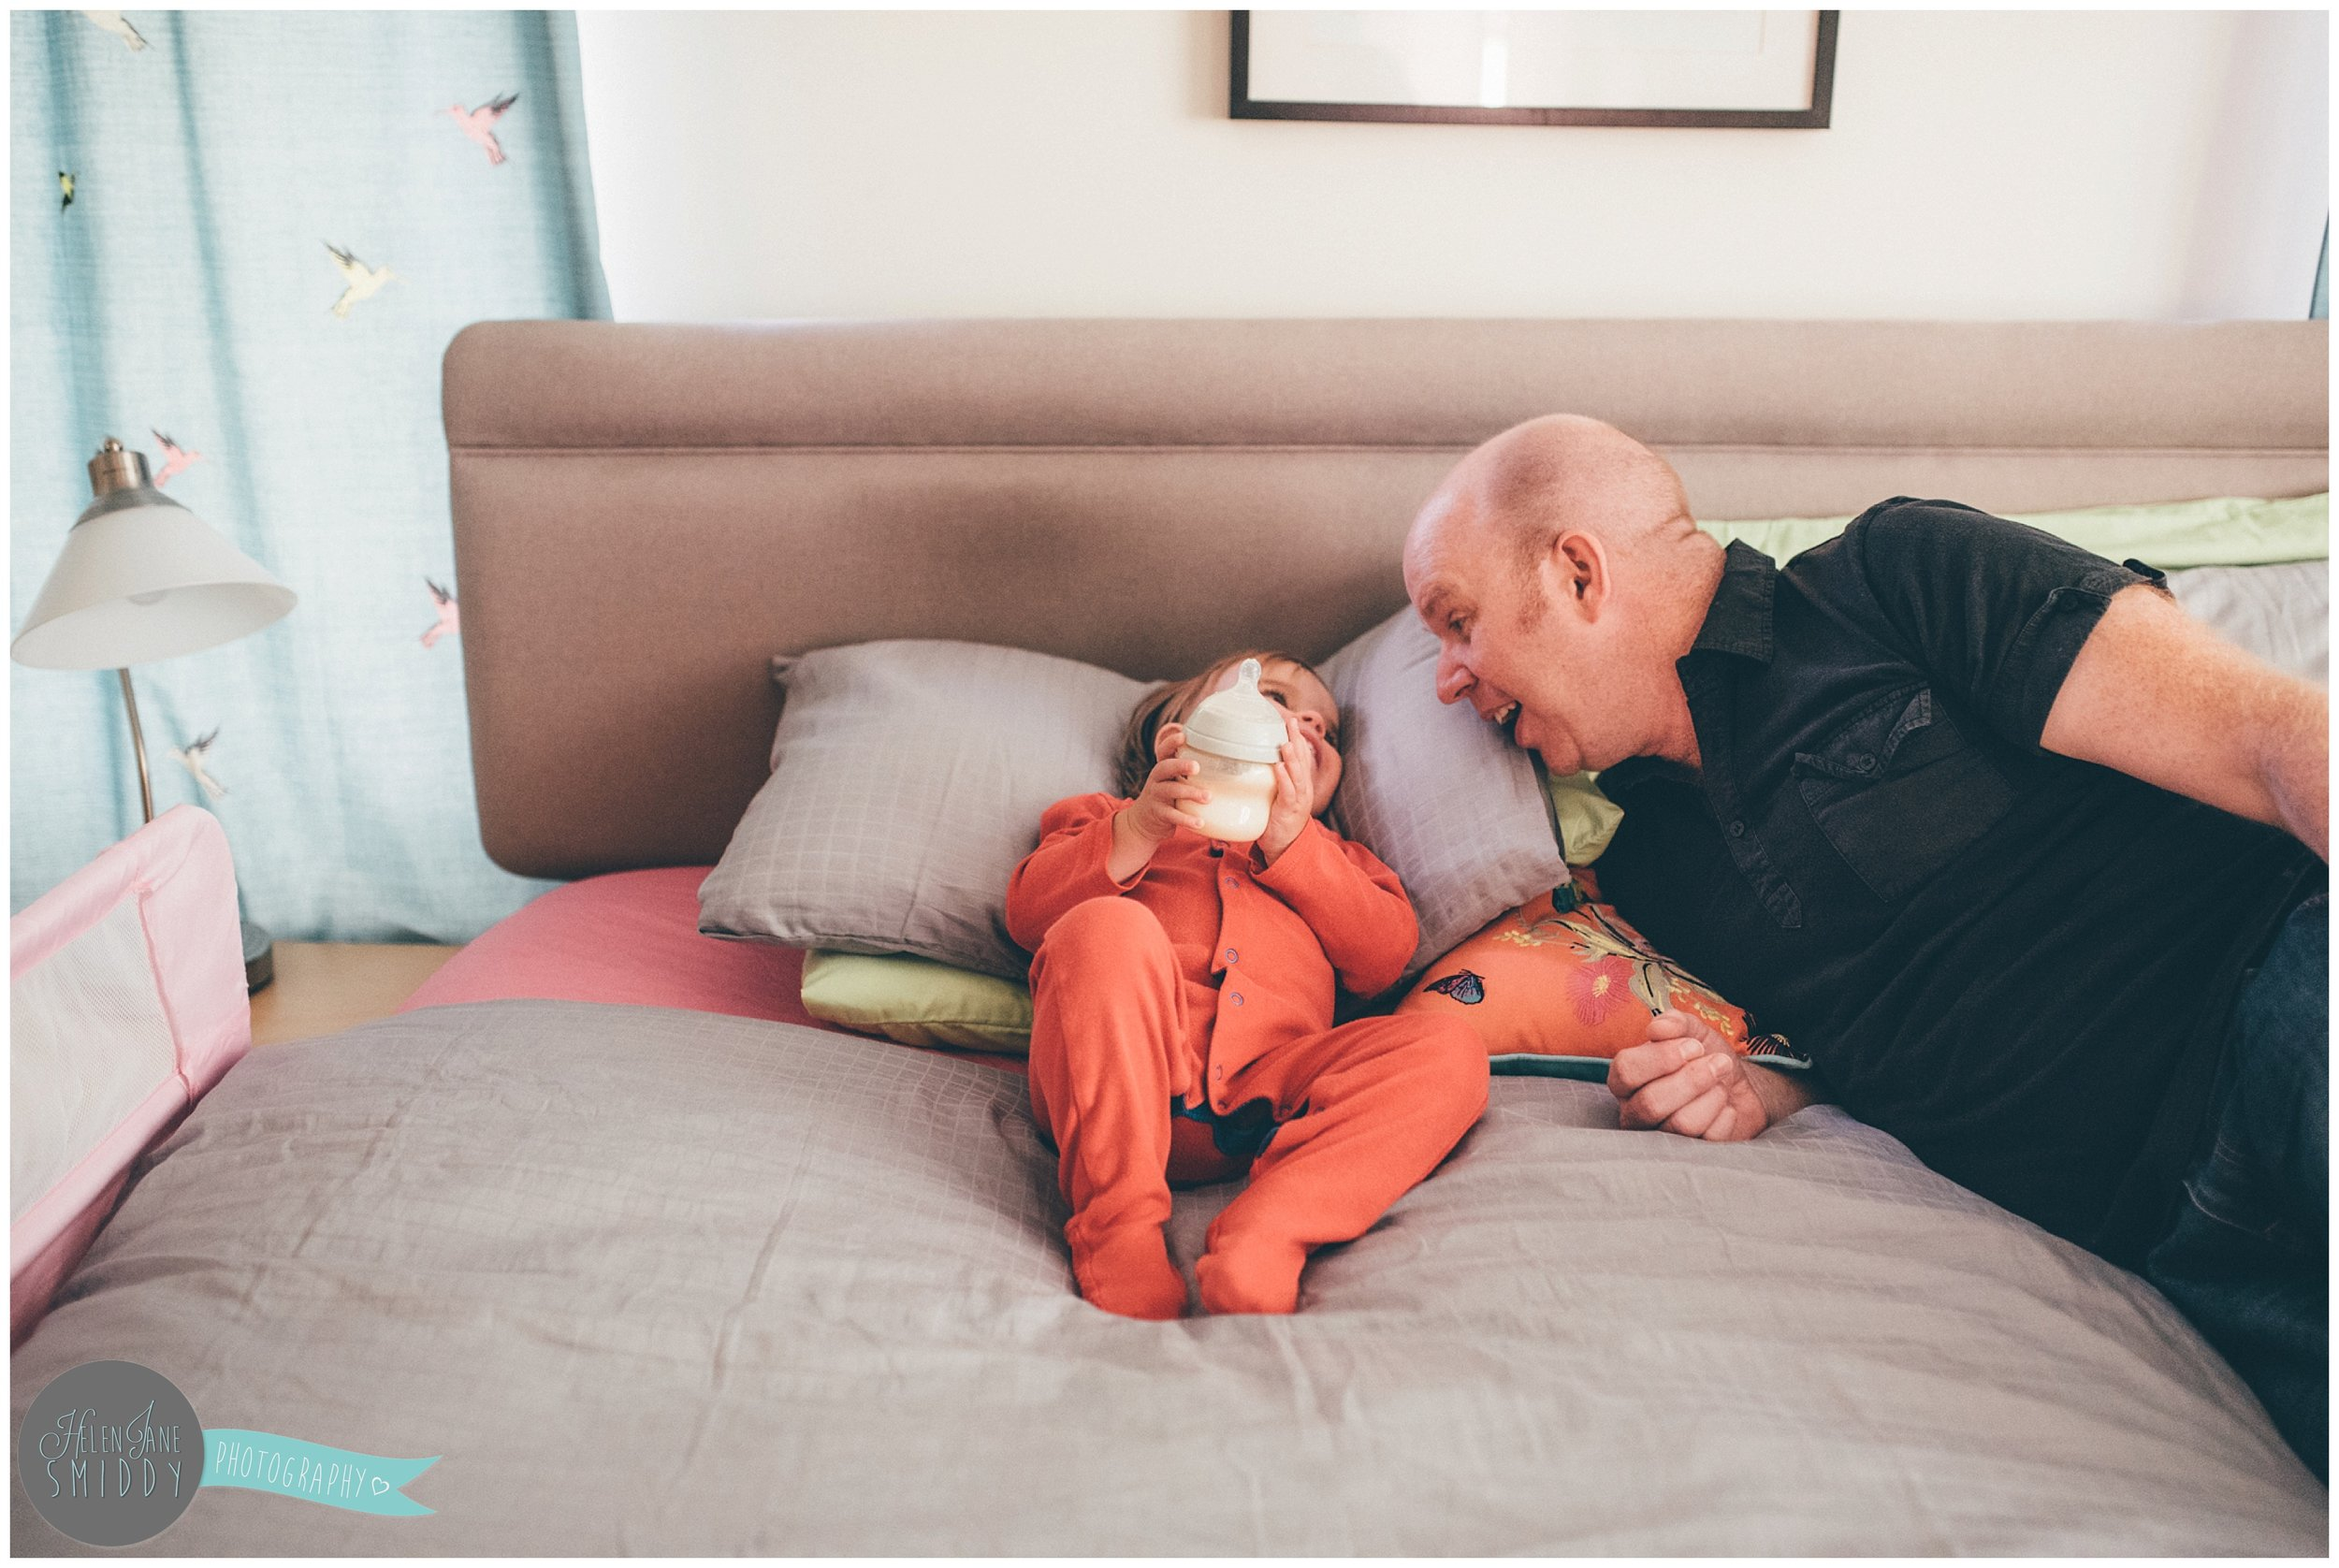 Bedtime in the Frodsham family home during an A Day In The Life photoshoot in Cheshire.